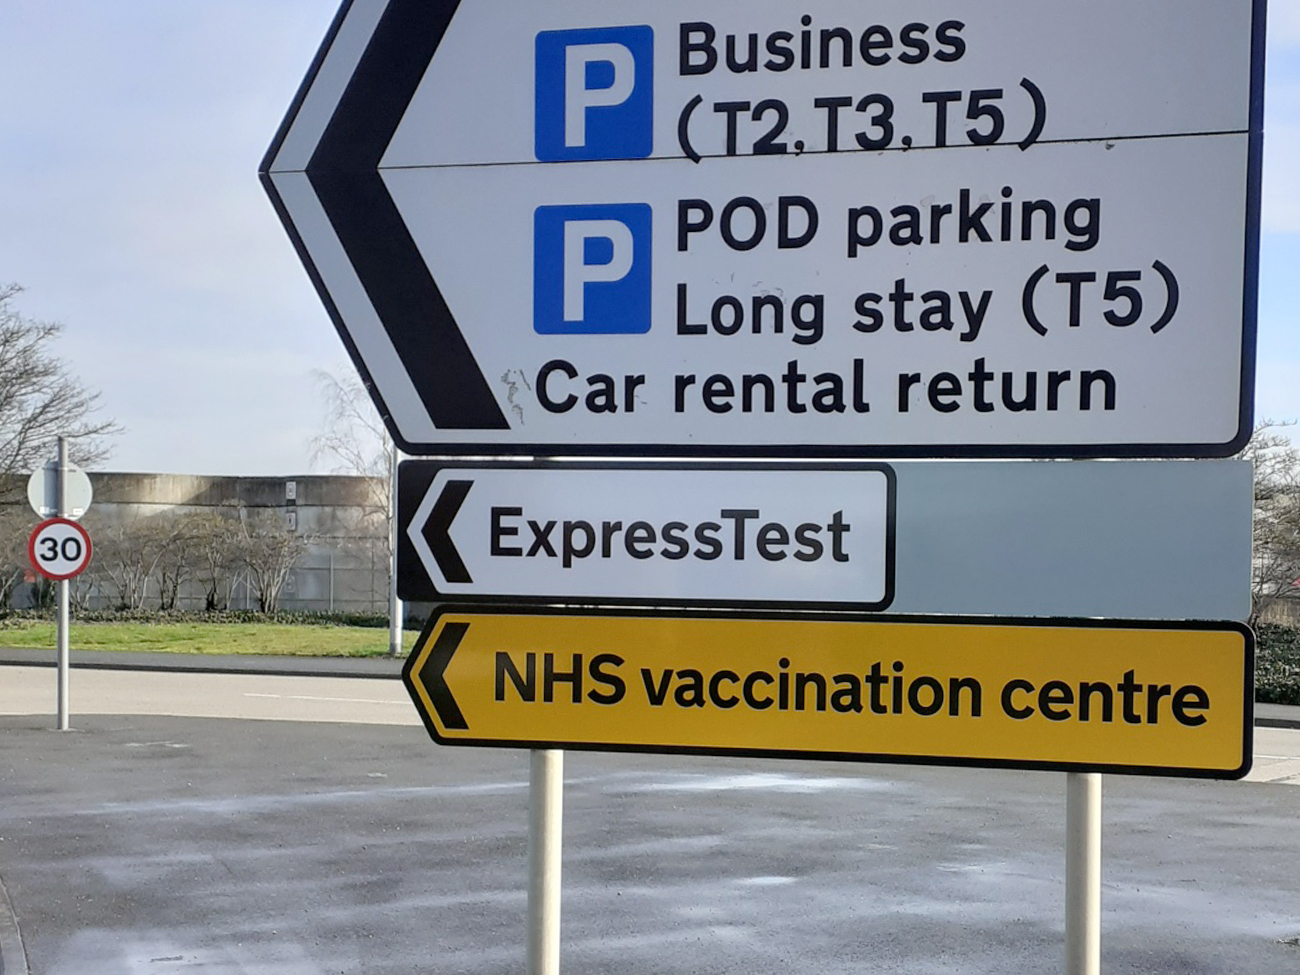 NHS Vaccination Centre highway signage